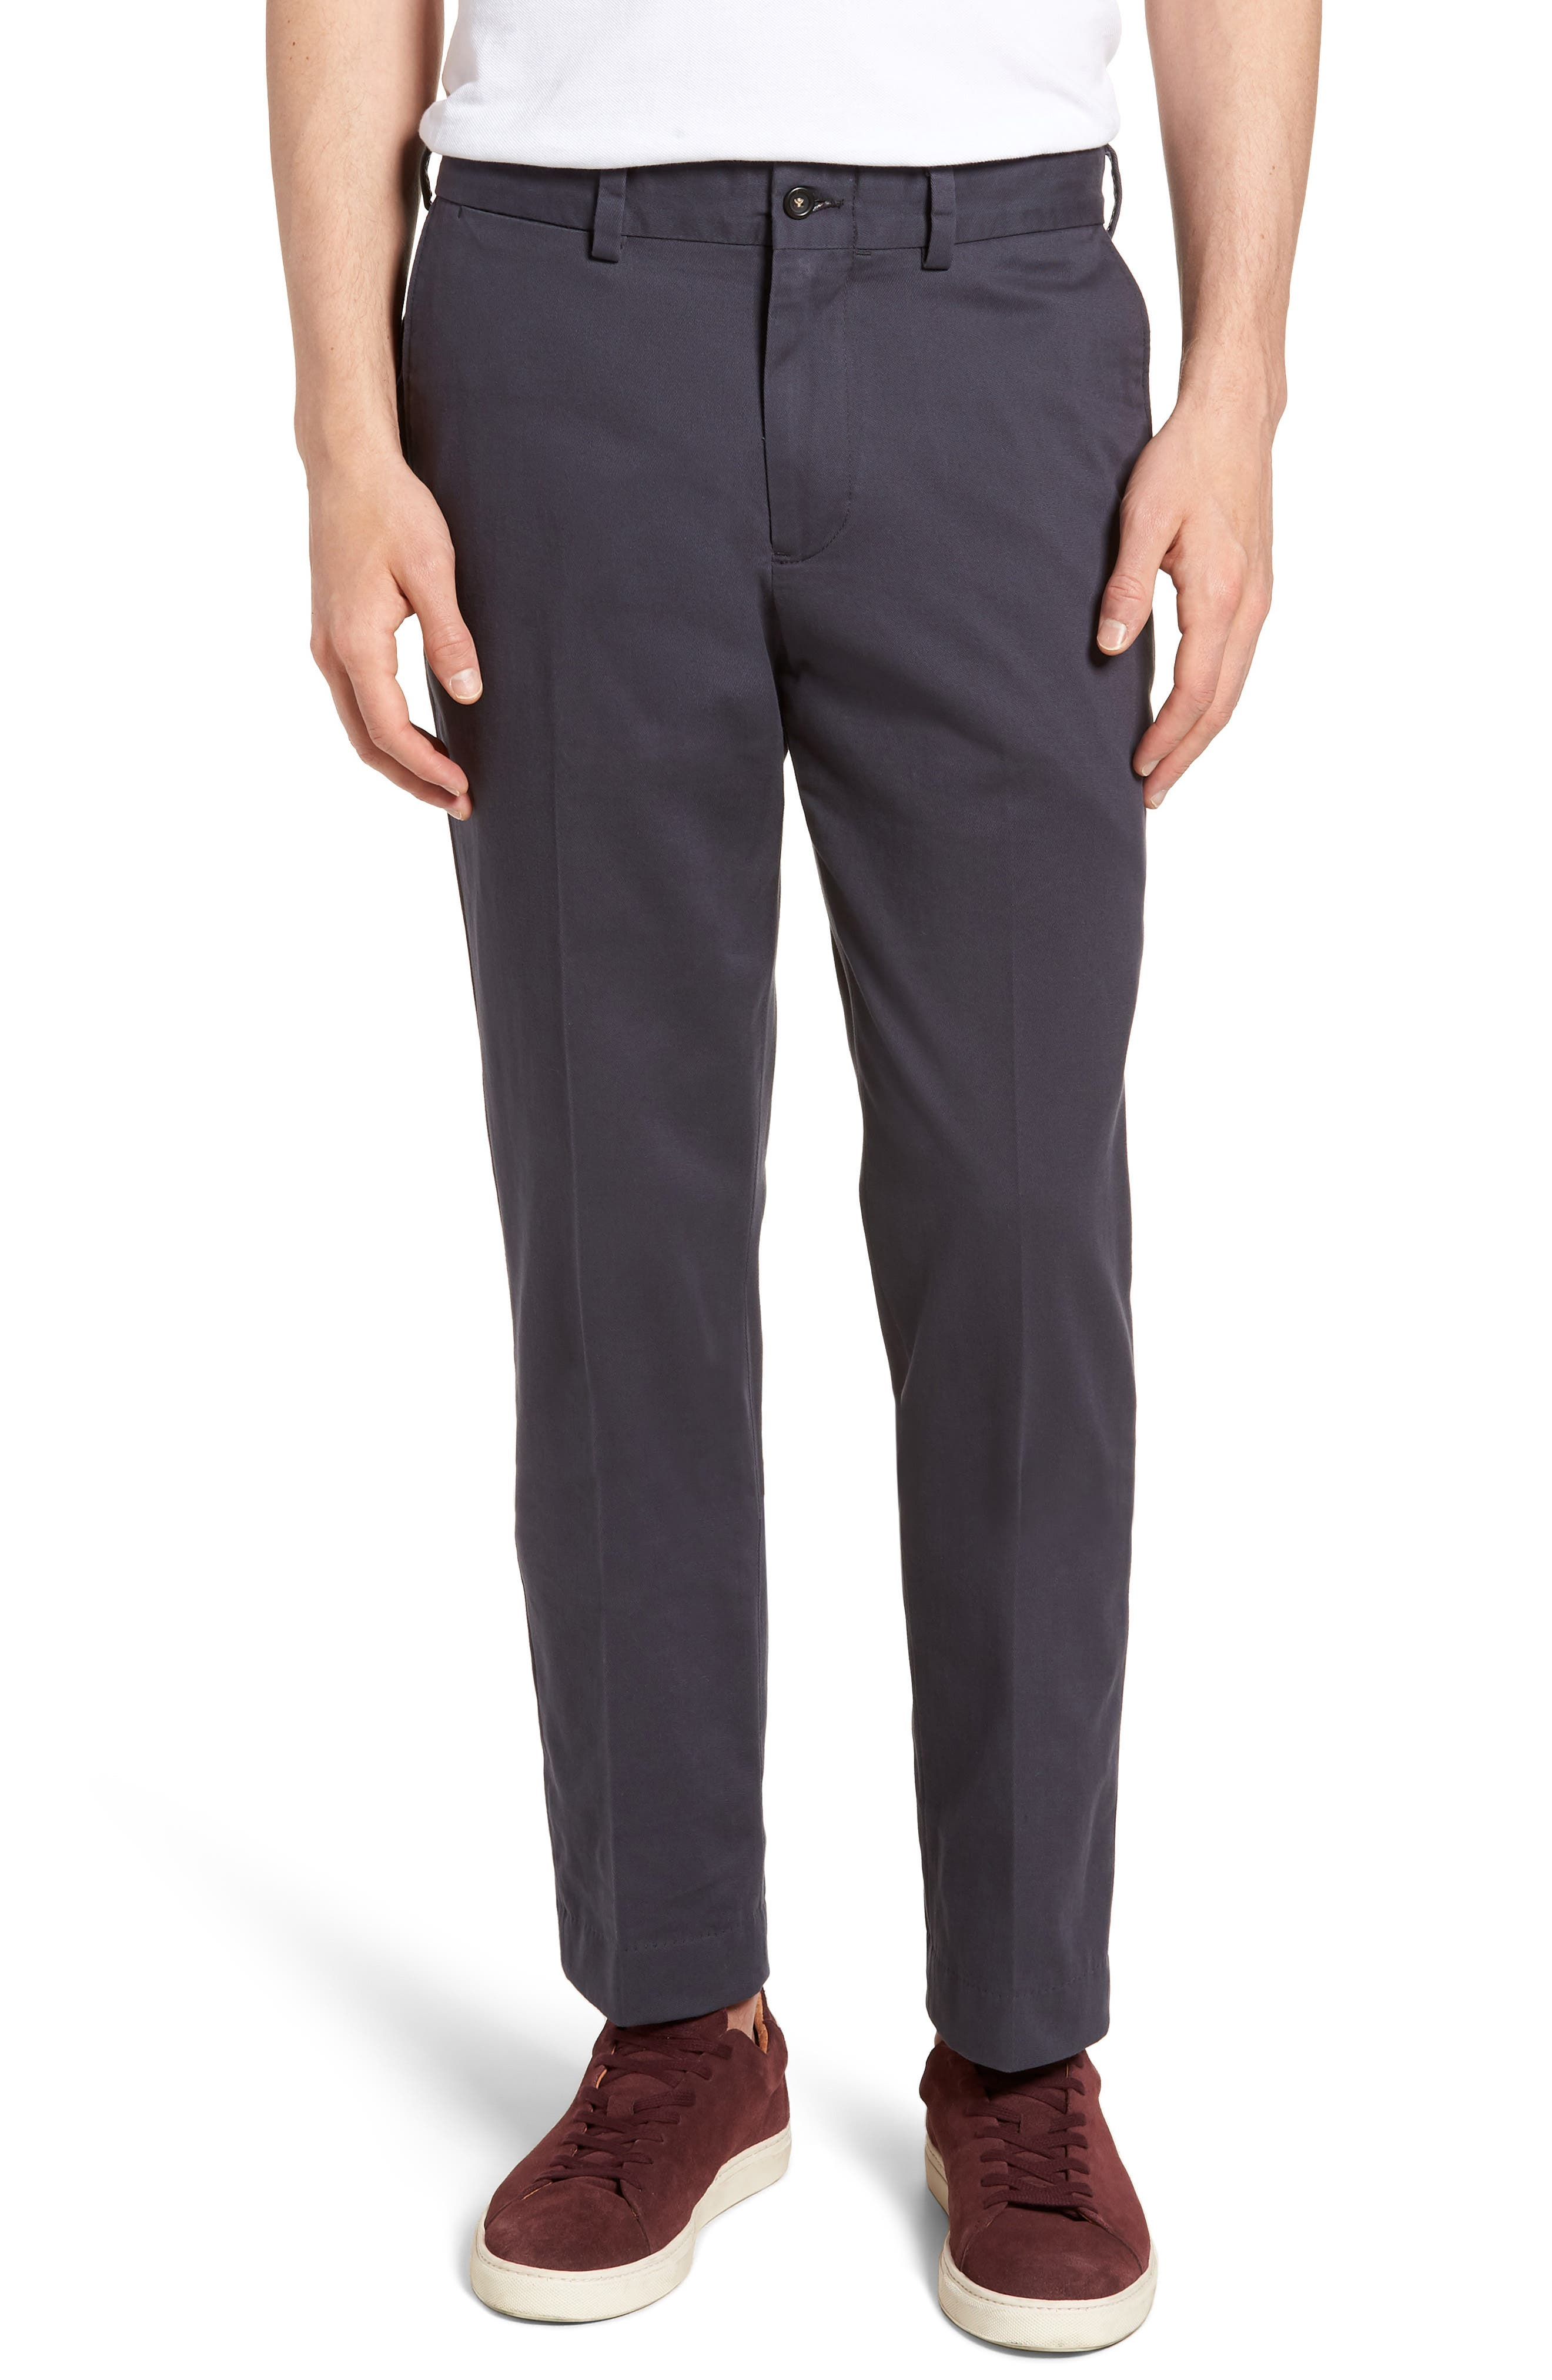 M3 Straight Fit Flat Front Vintage Twill Pants,                         Main,                         color,